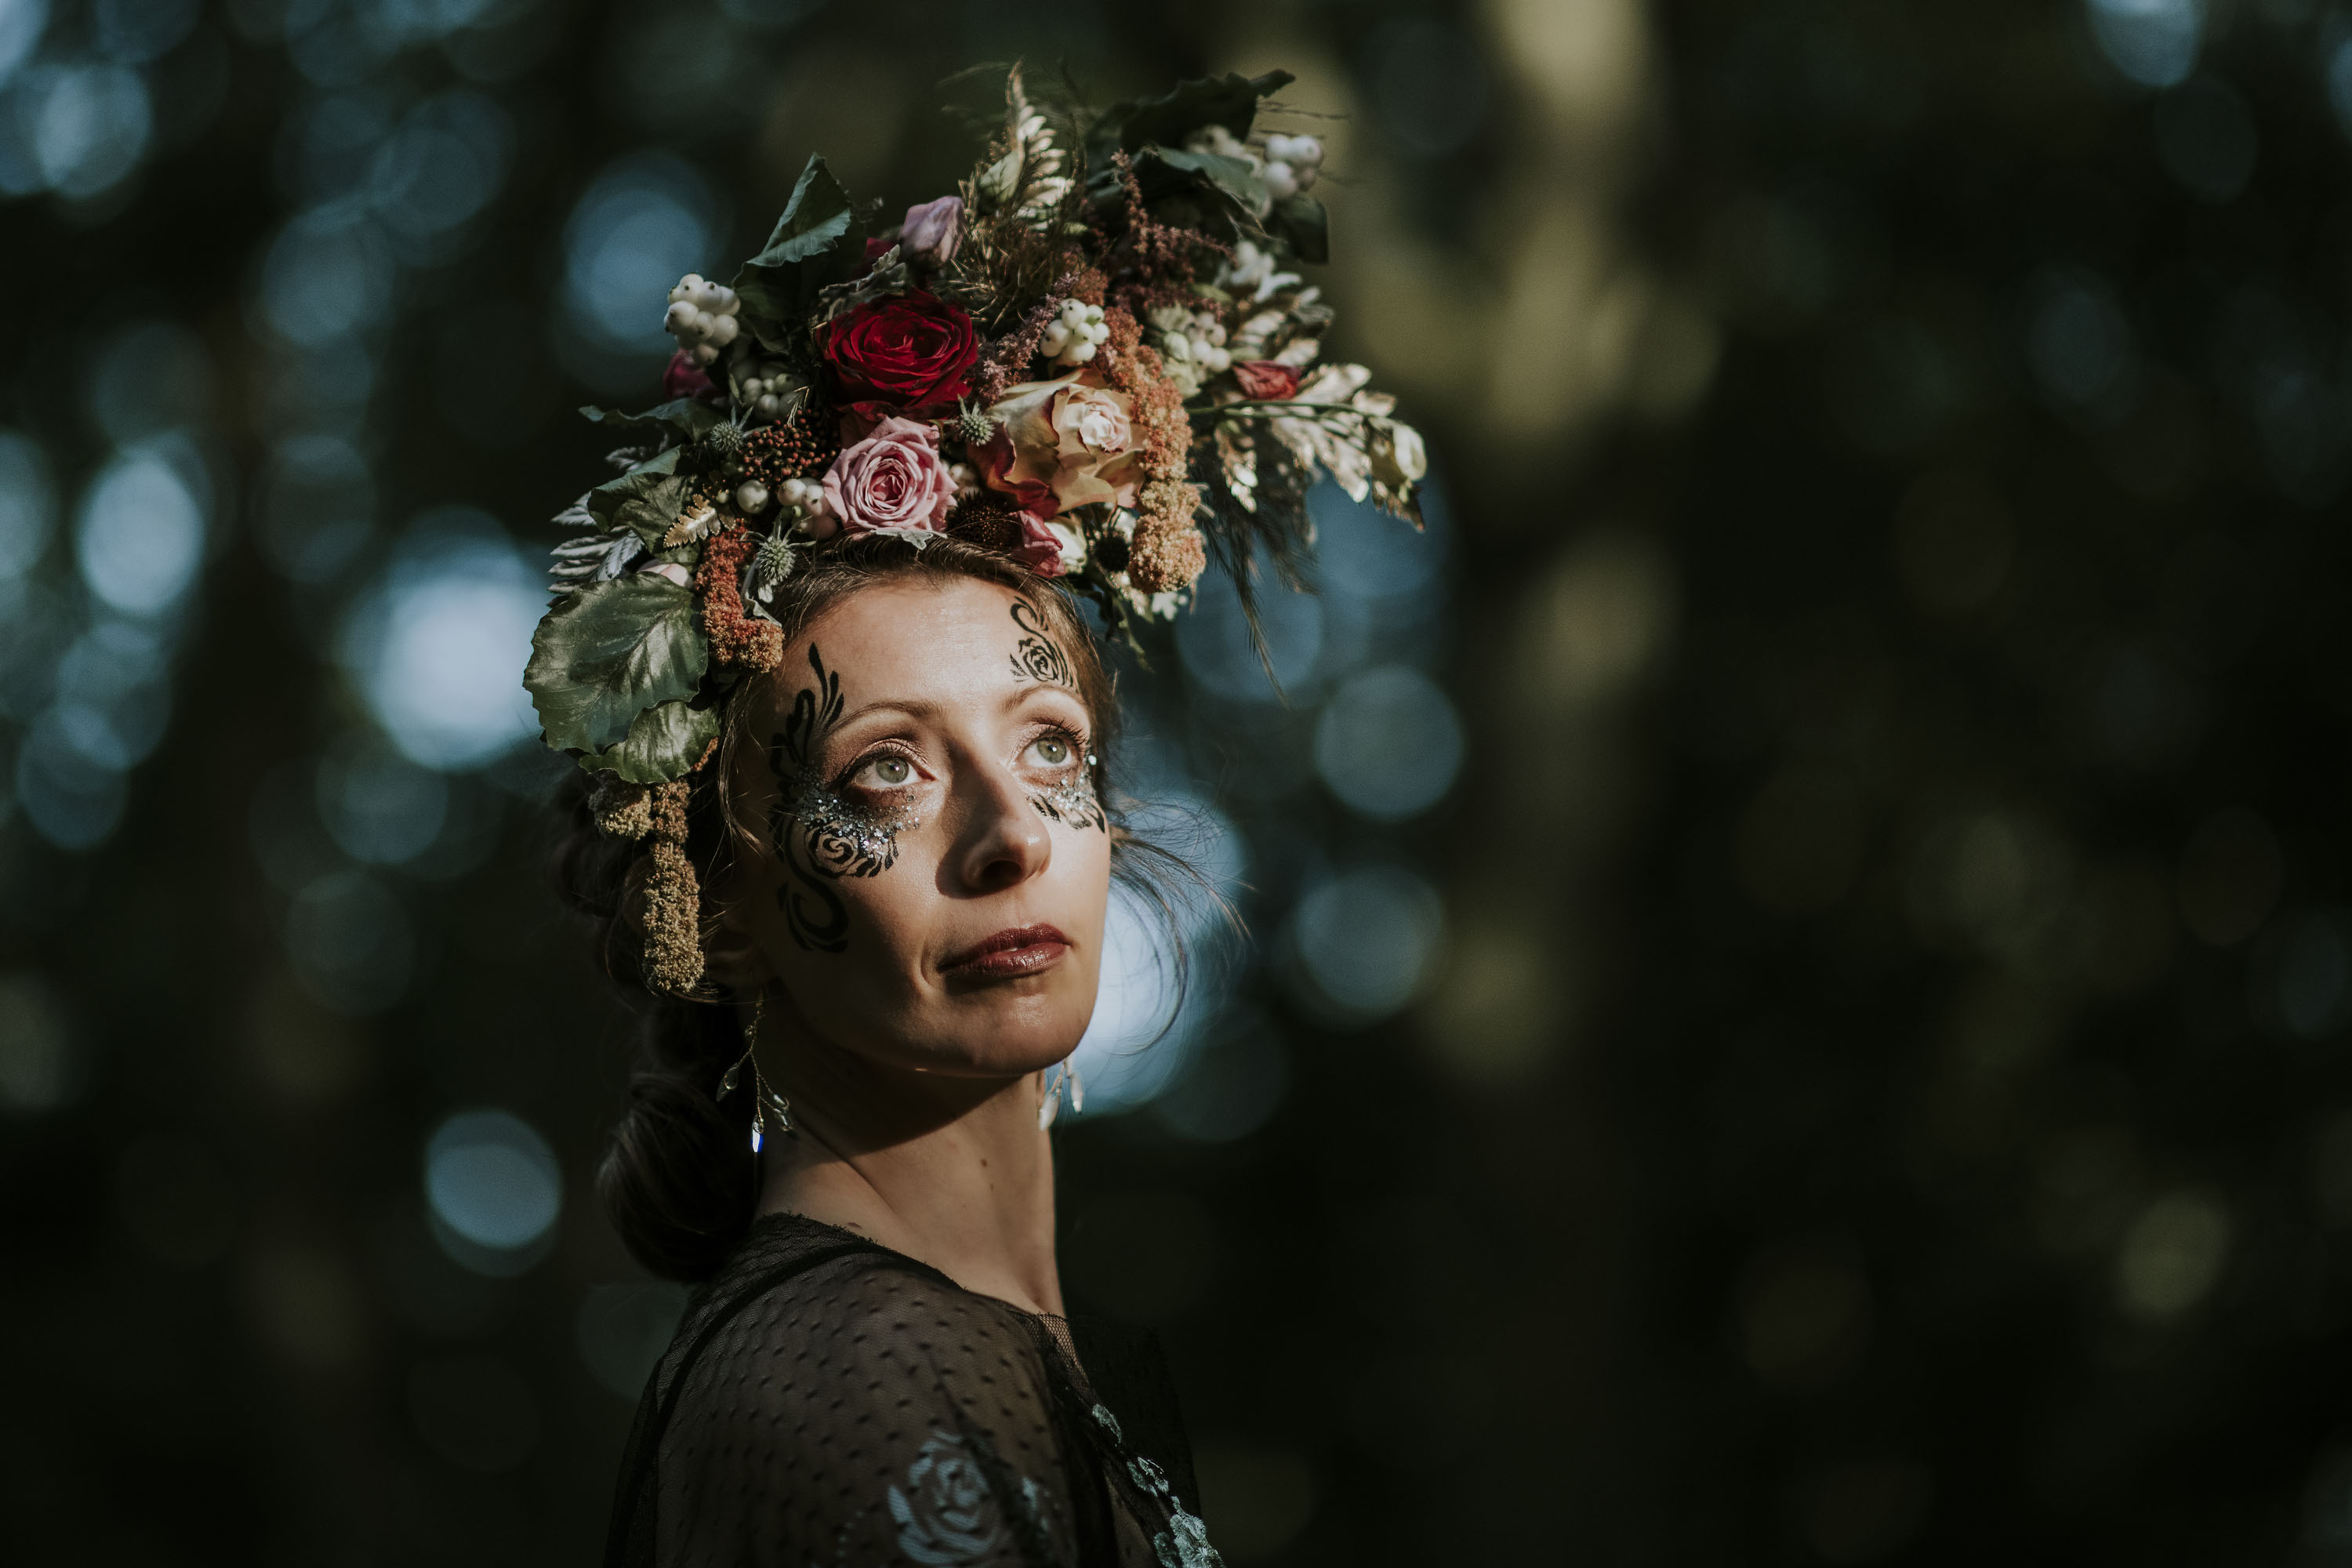 bridal floral headdress & unique bridal makeup - ethereal bridal look - quirky bridal accessories